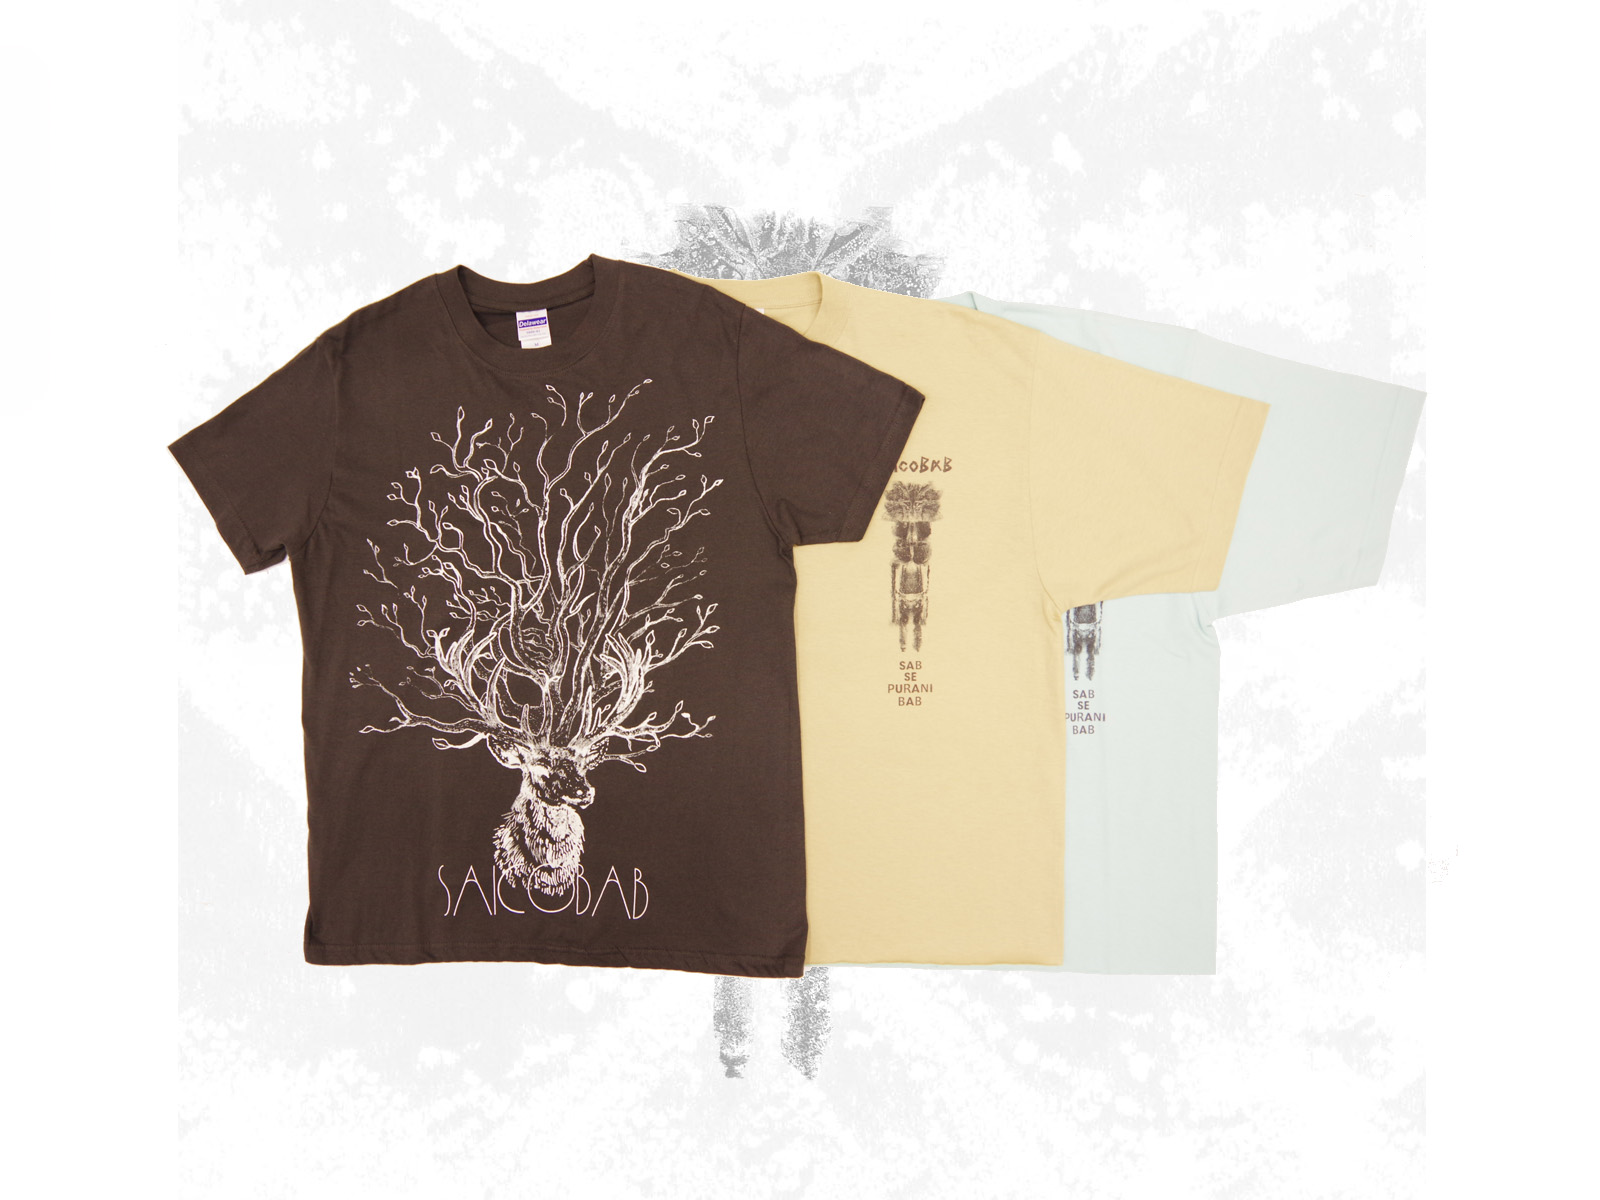 SAICOBAB – Limited T-Shirts